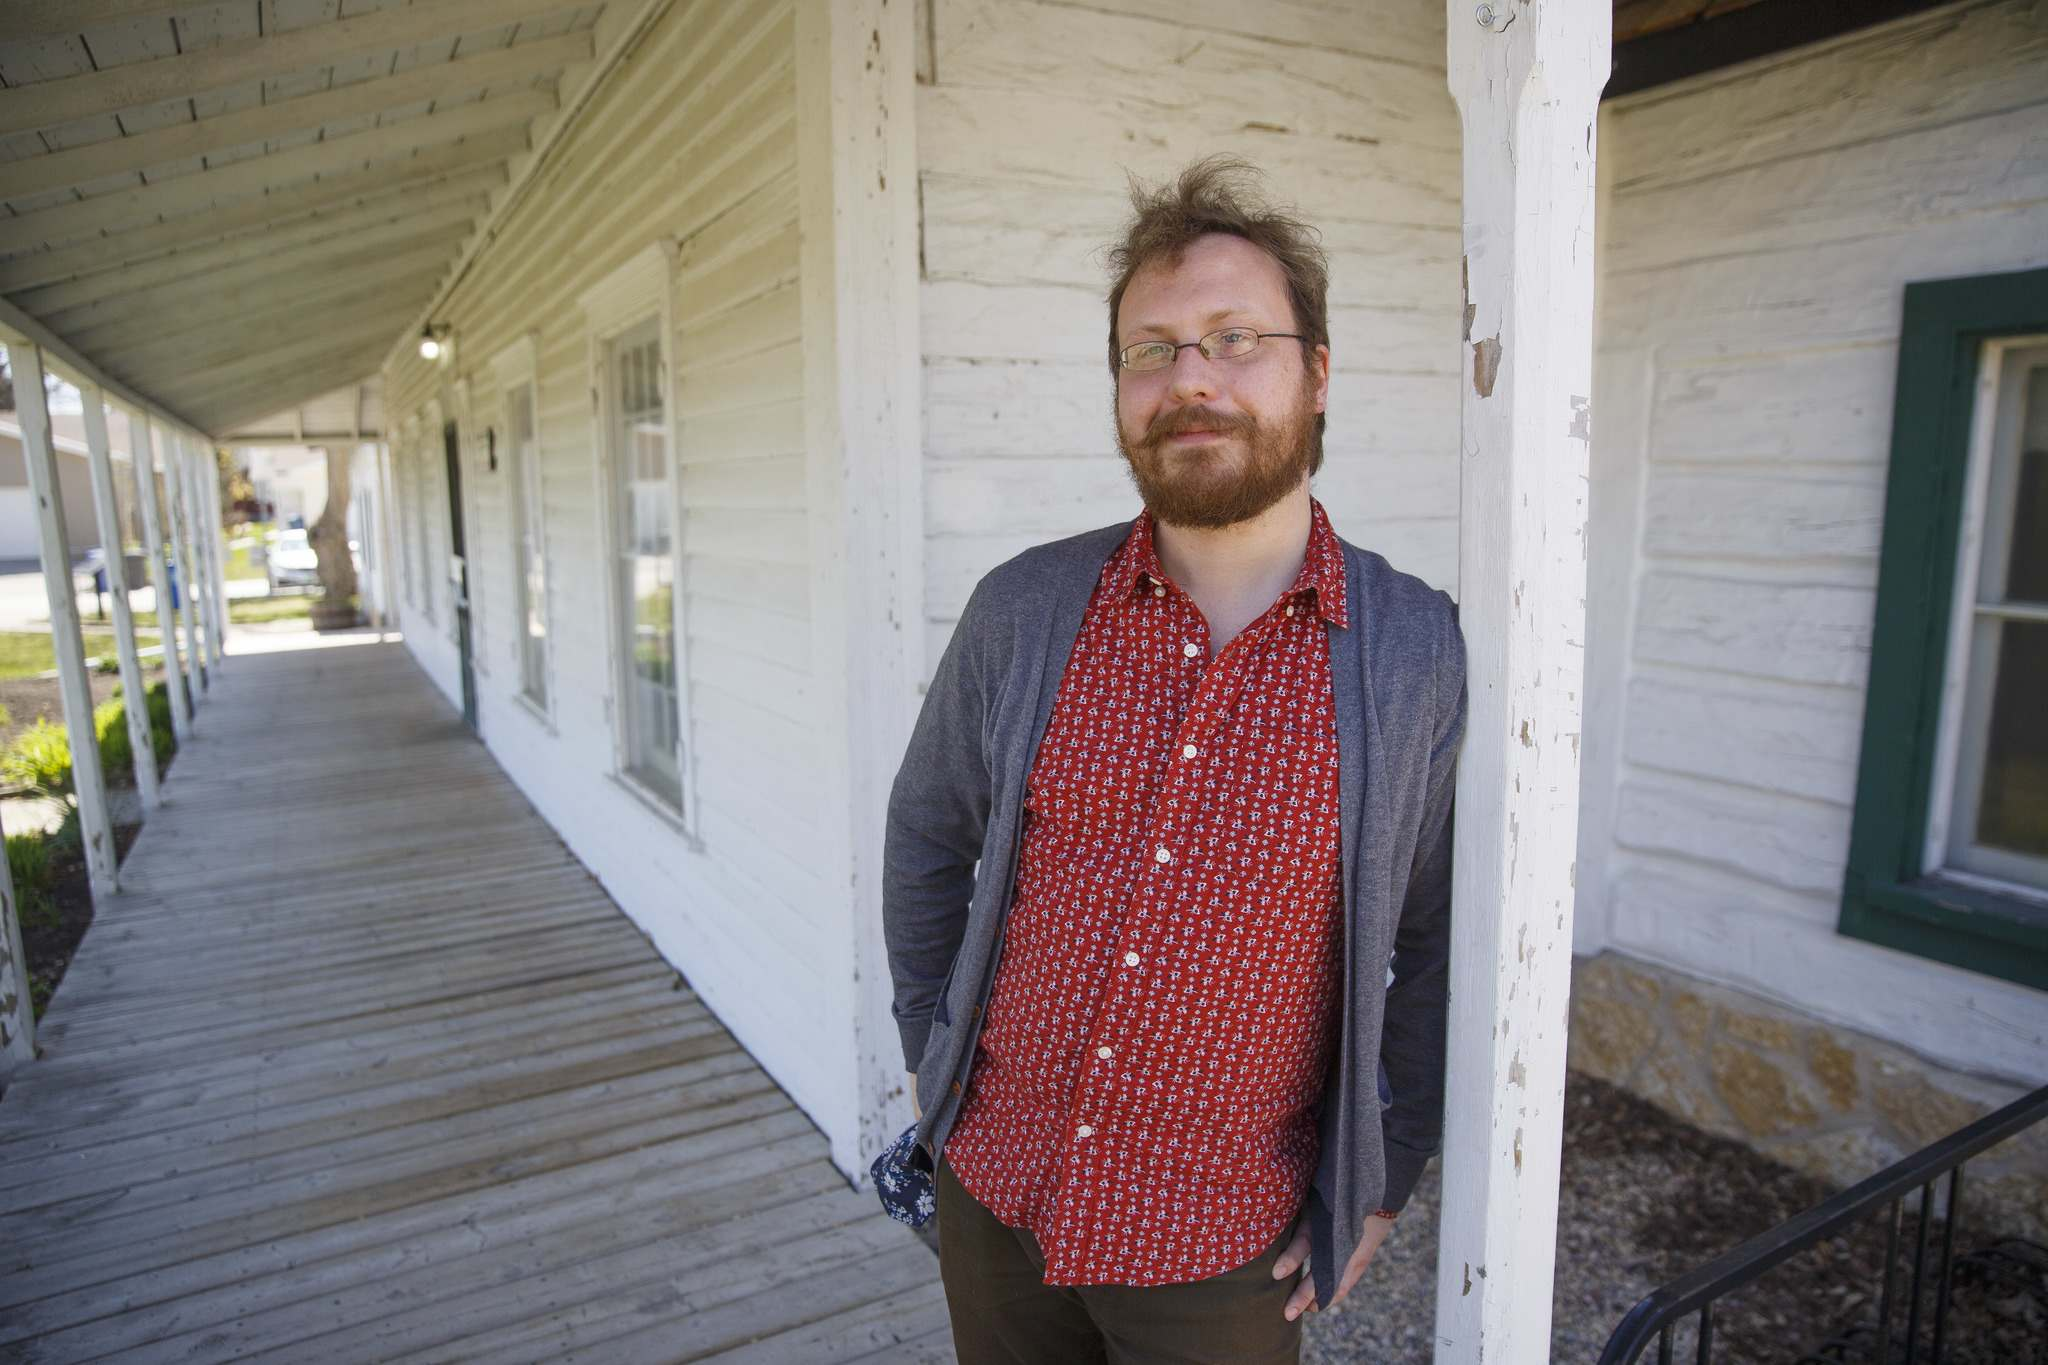 Eric Napier Strong, curator and manager of Seven Oaks House Museum, says the history of Winnipeg and Manitoba is 'all right here in this place.' (Mike Deal / Winnipeg Free Press)</p>